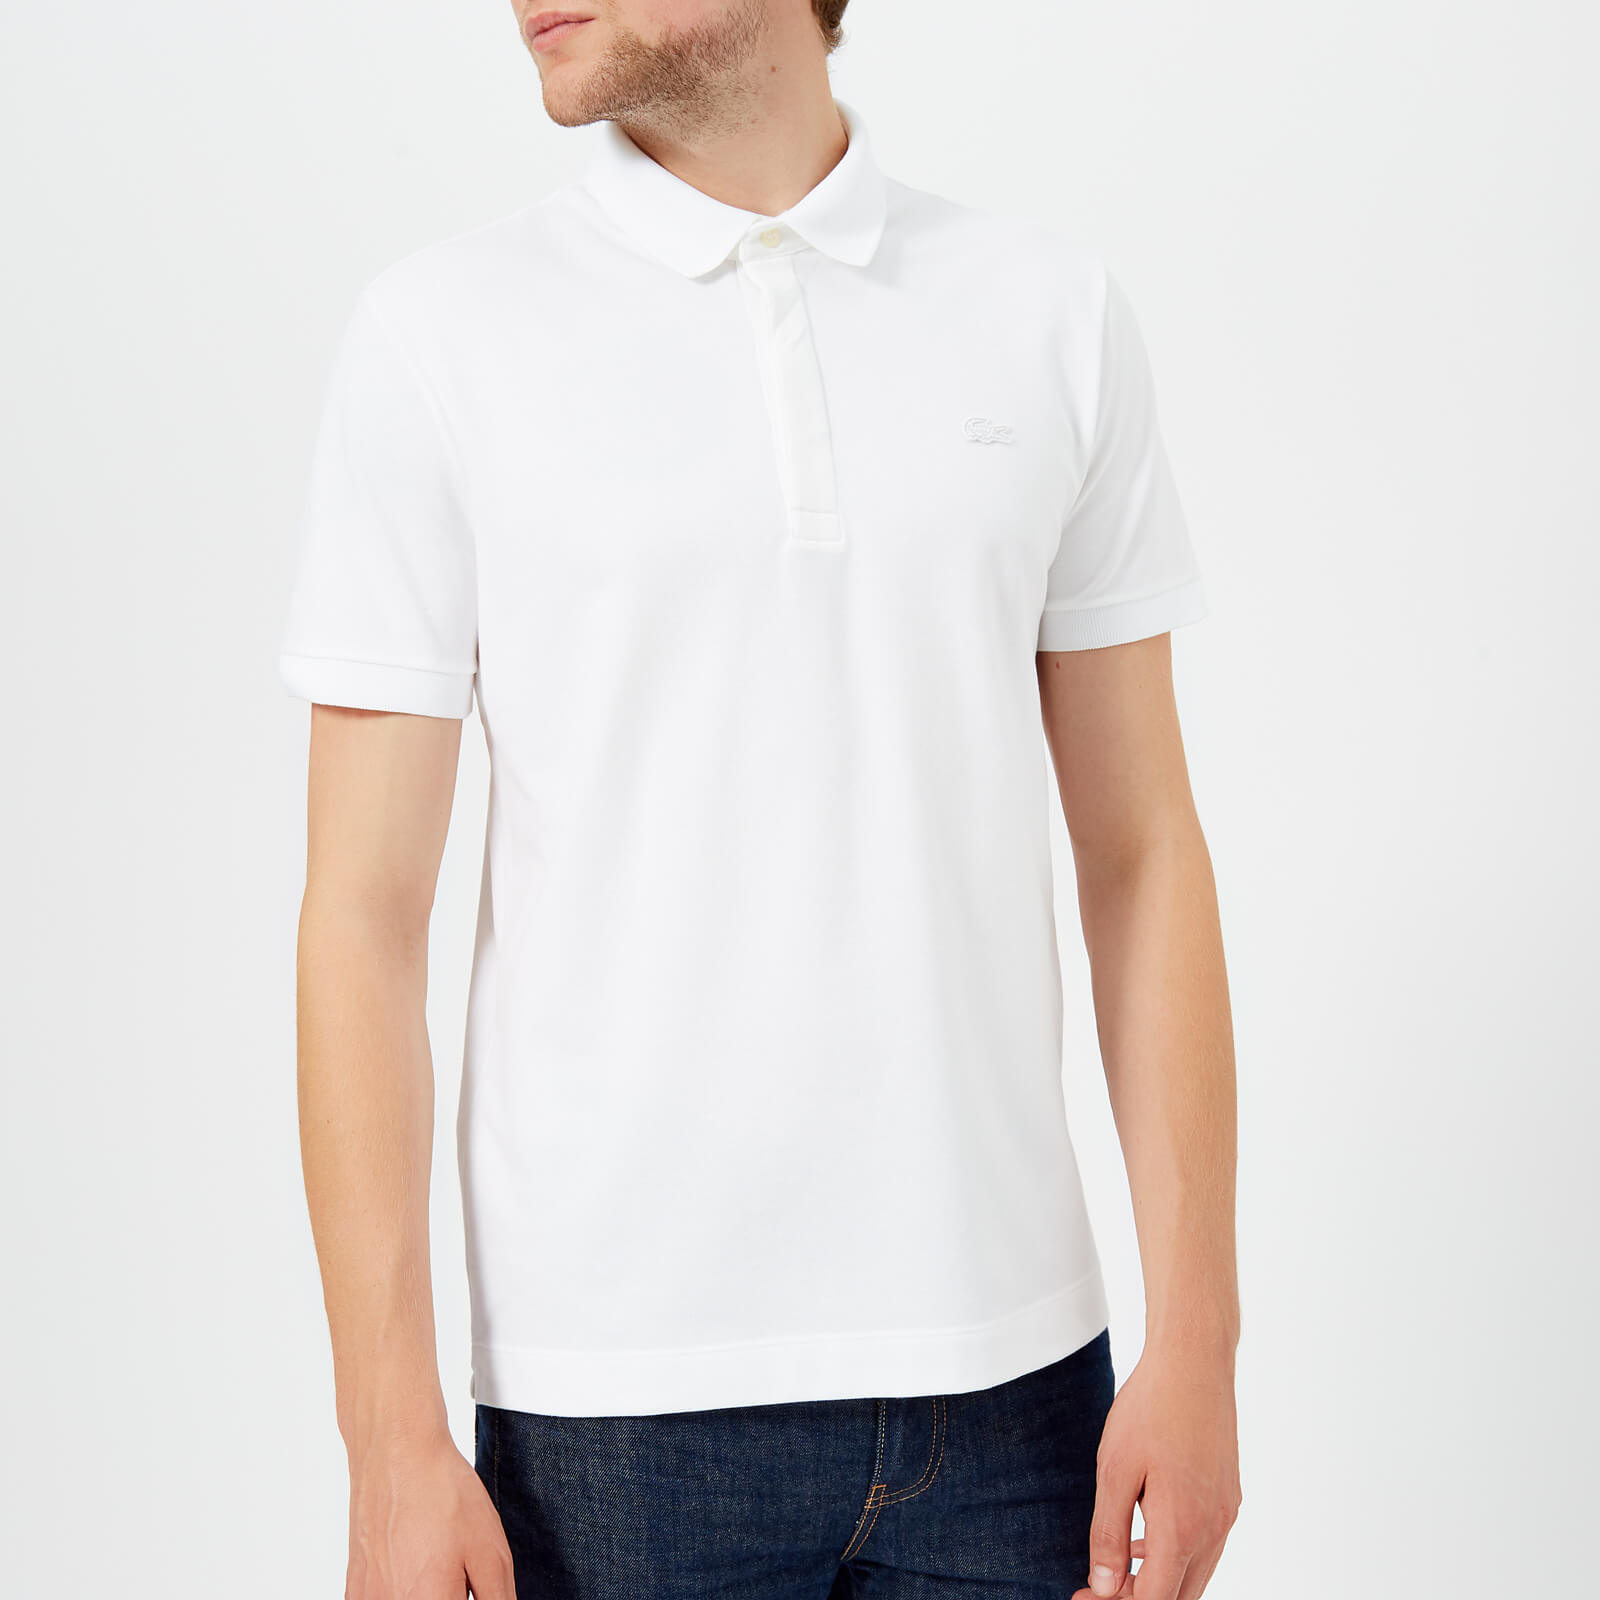 4855a28510 Lacoste Men's Short Sleeve Paris Polo Shirt - White Clothing | TheHut.com